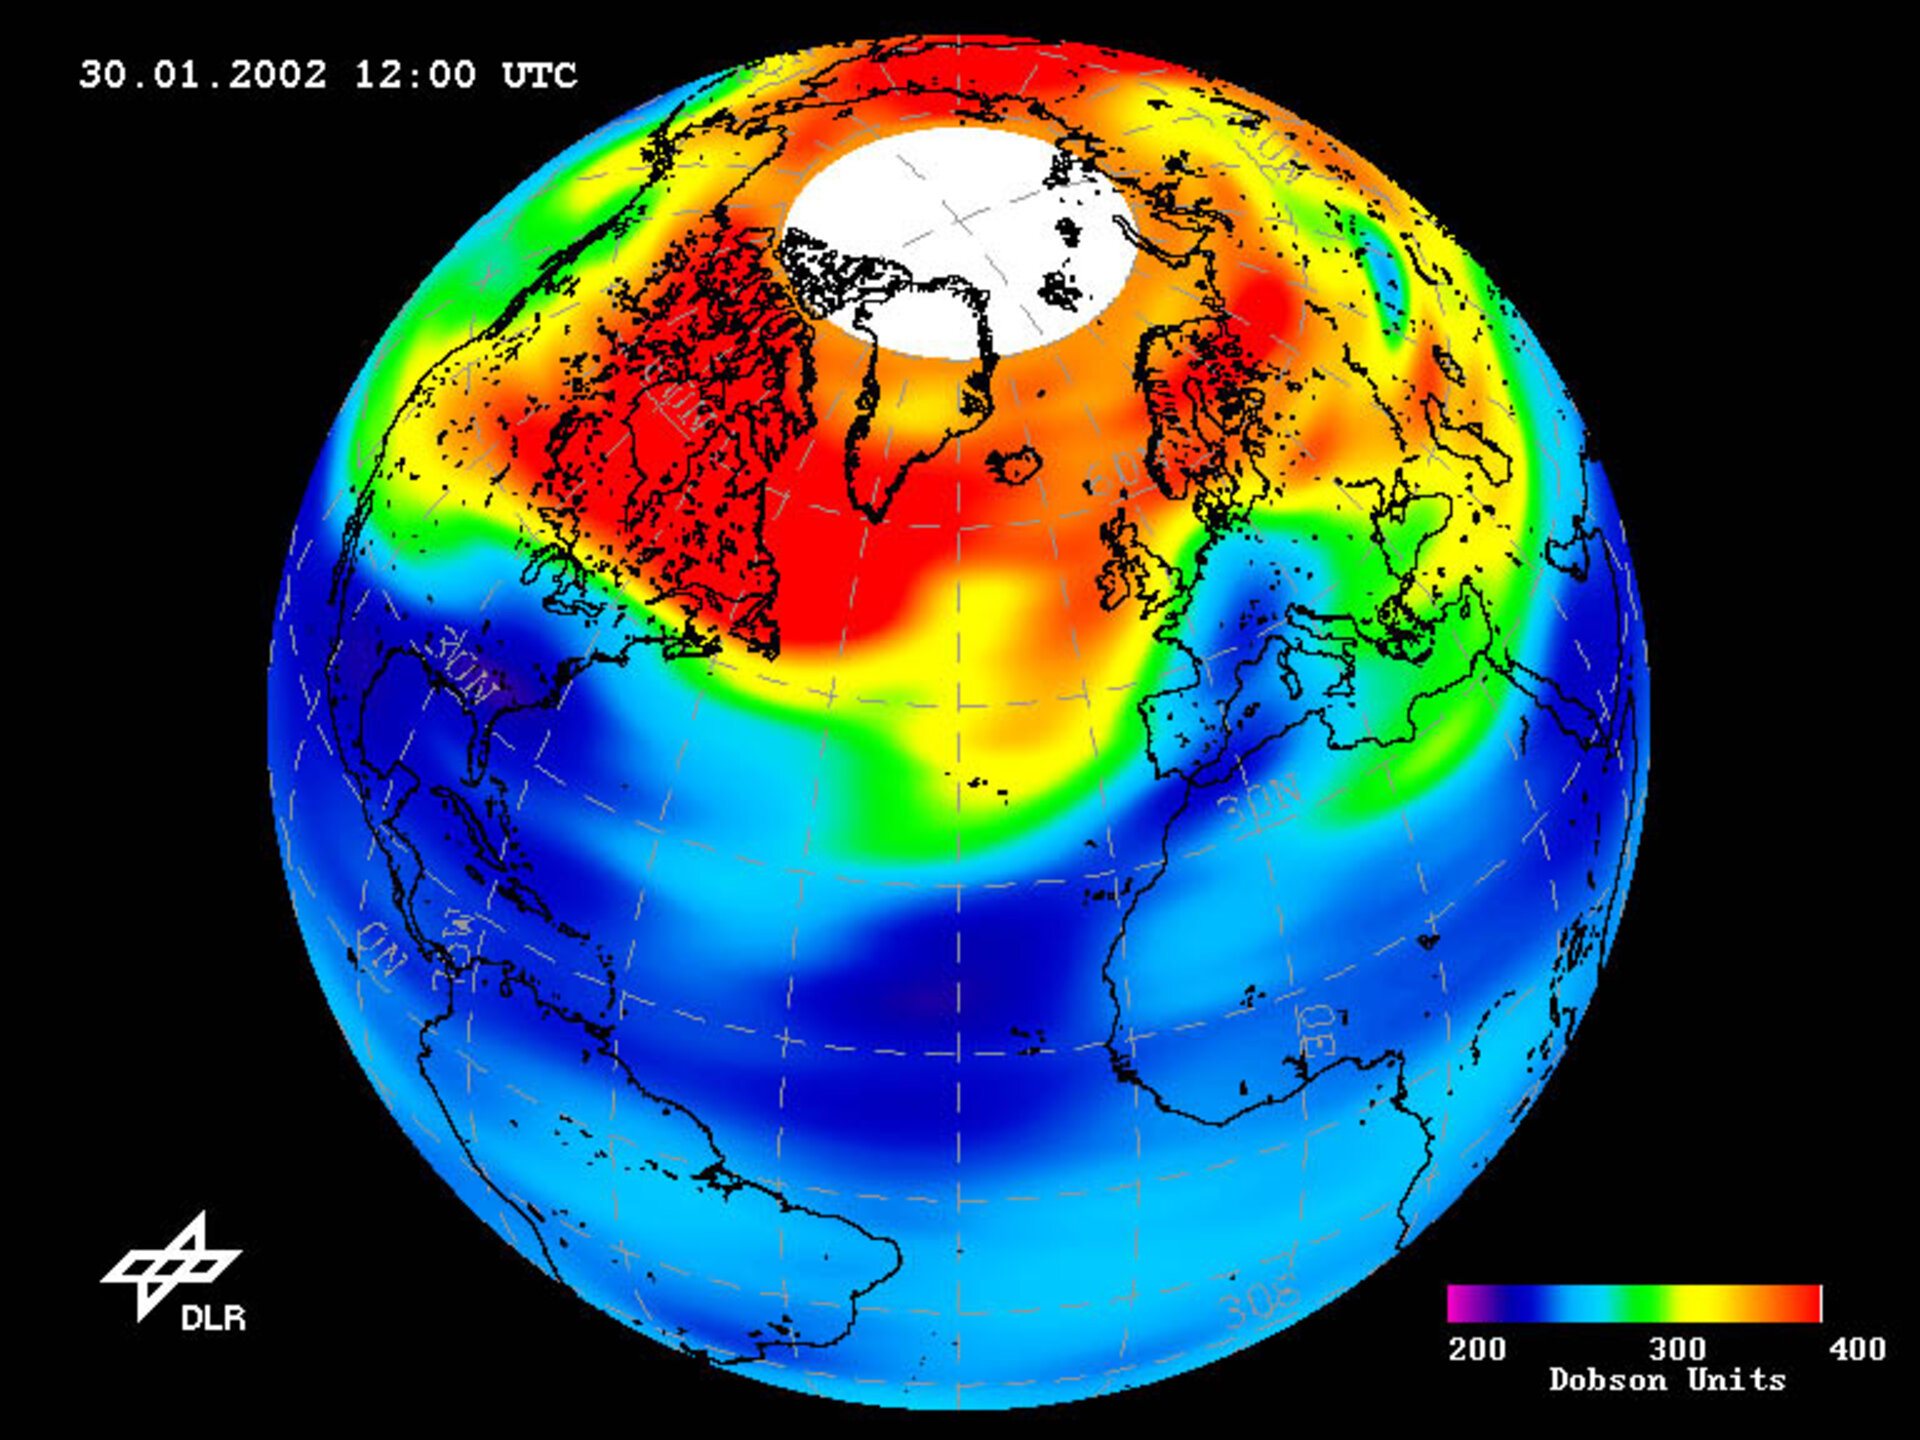 Low-ozone event over Northern Hemisphere, 30.01.02